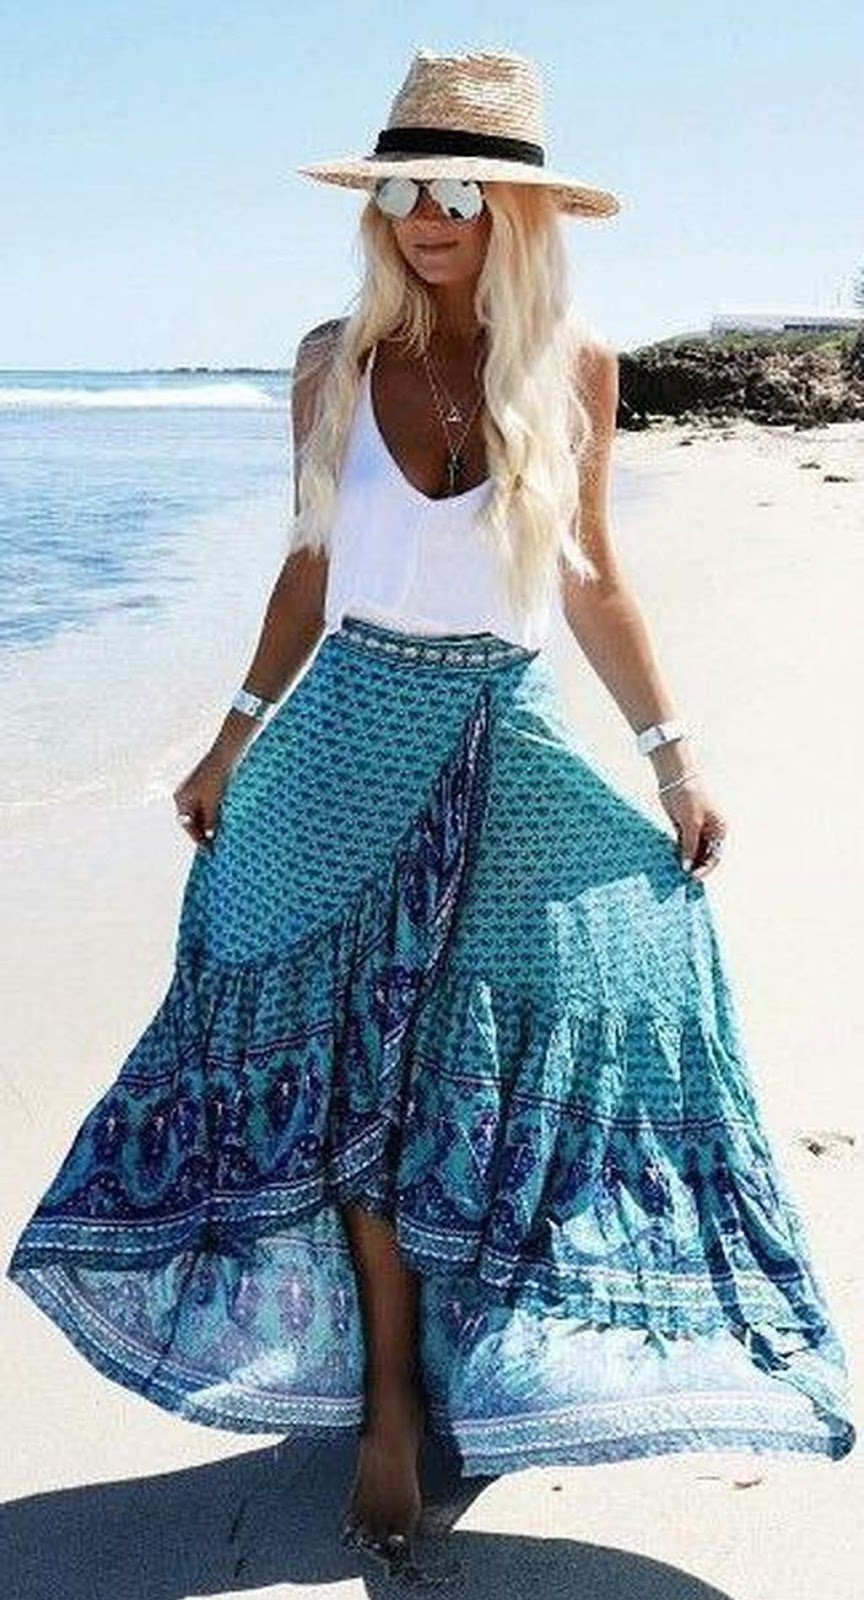 bohemian style addiction / hat + white top + maxi printed skirt